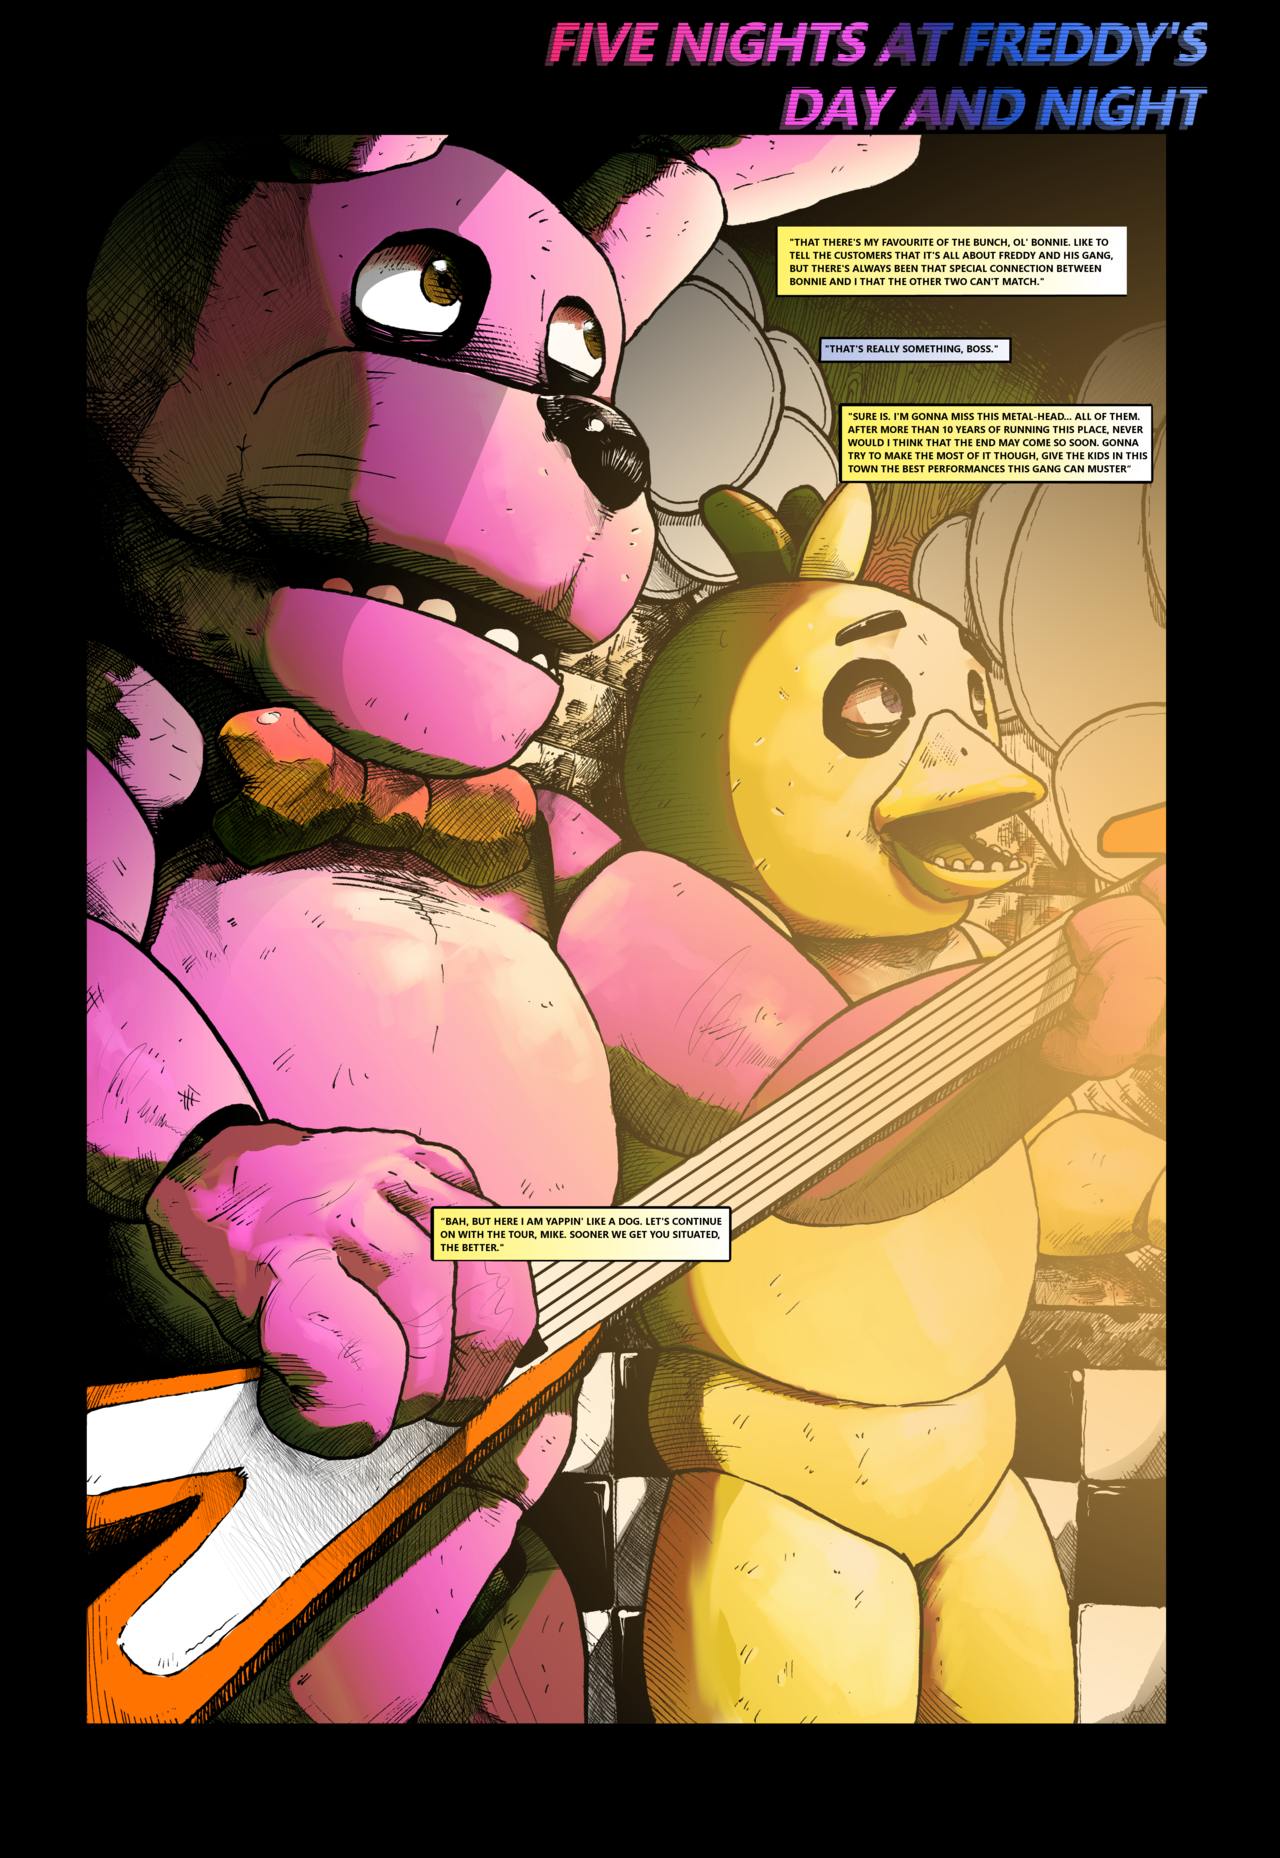 You Should Read This Fan-Made Five Nights at Freddy's Comic